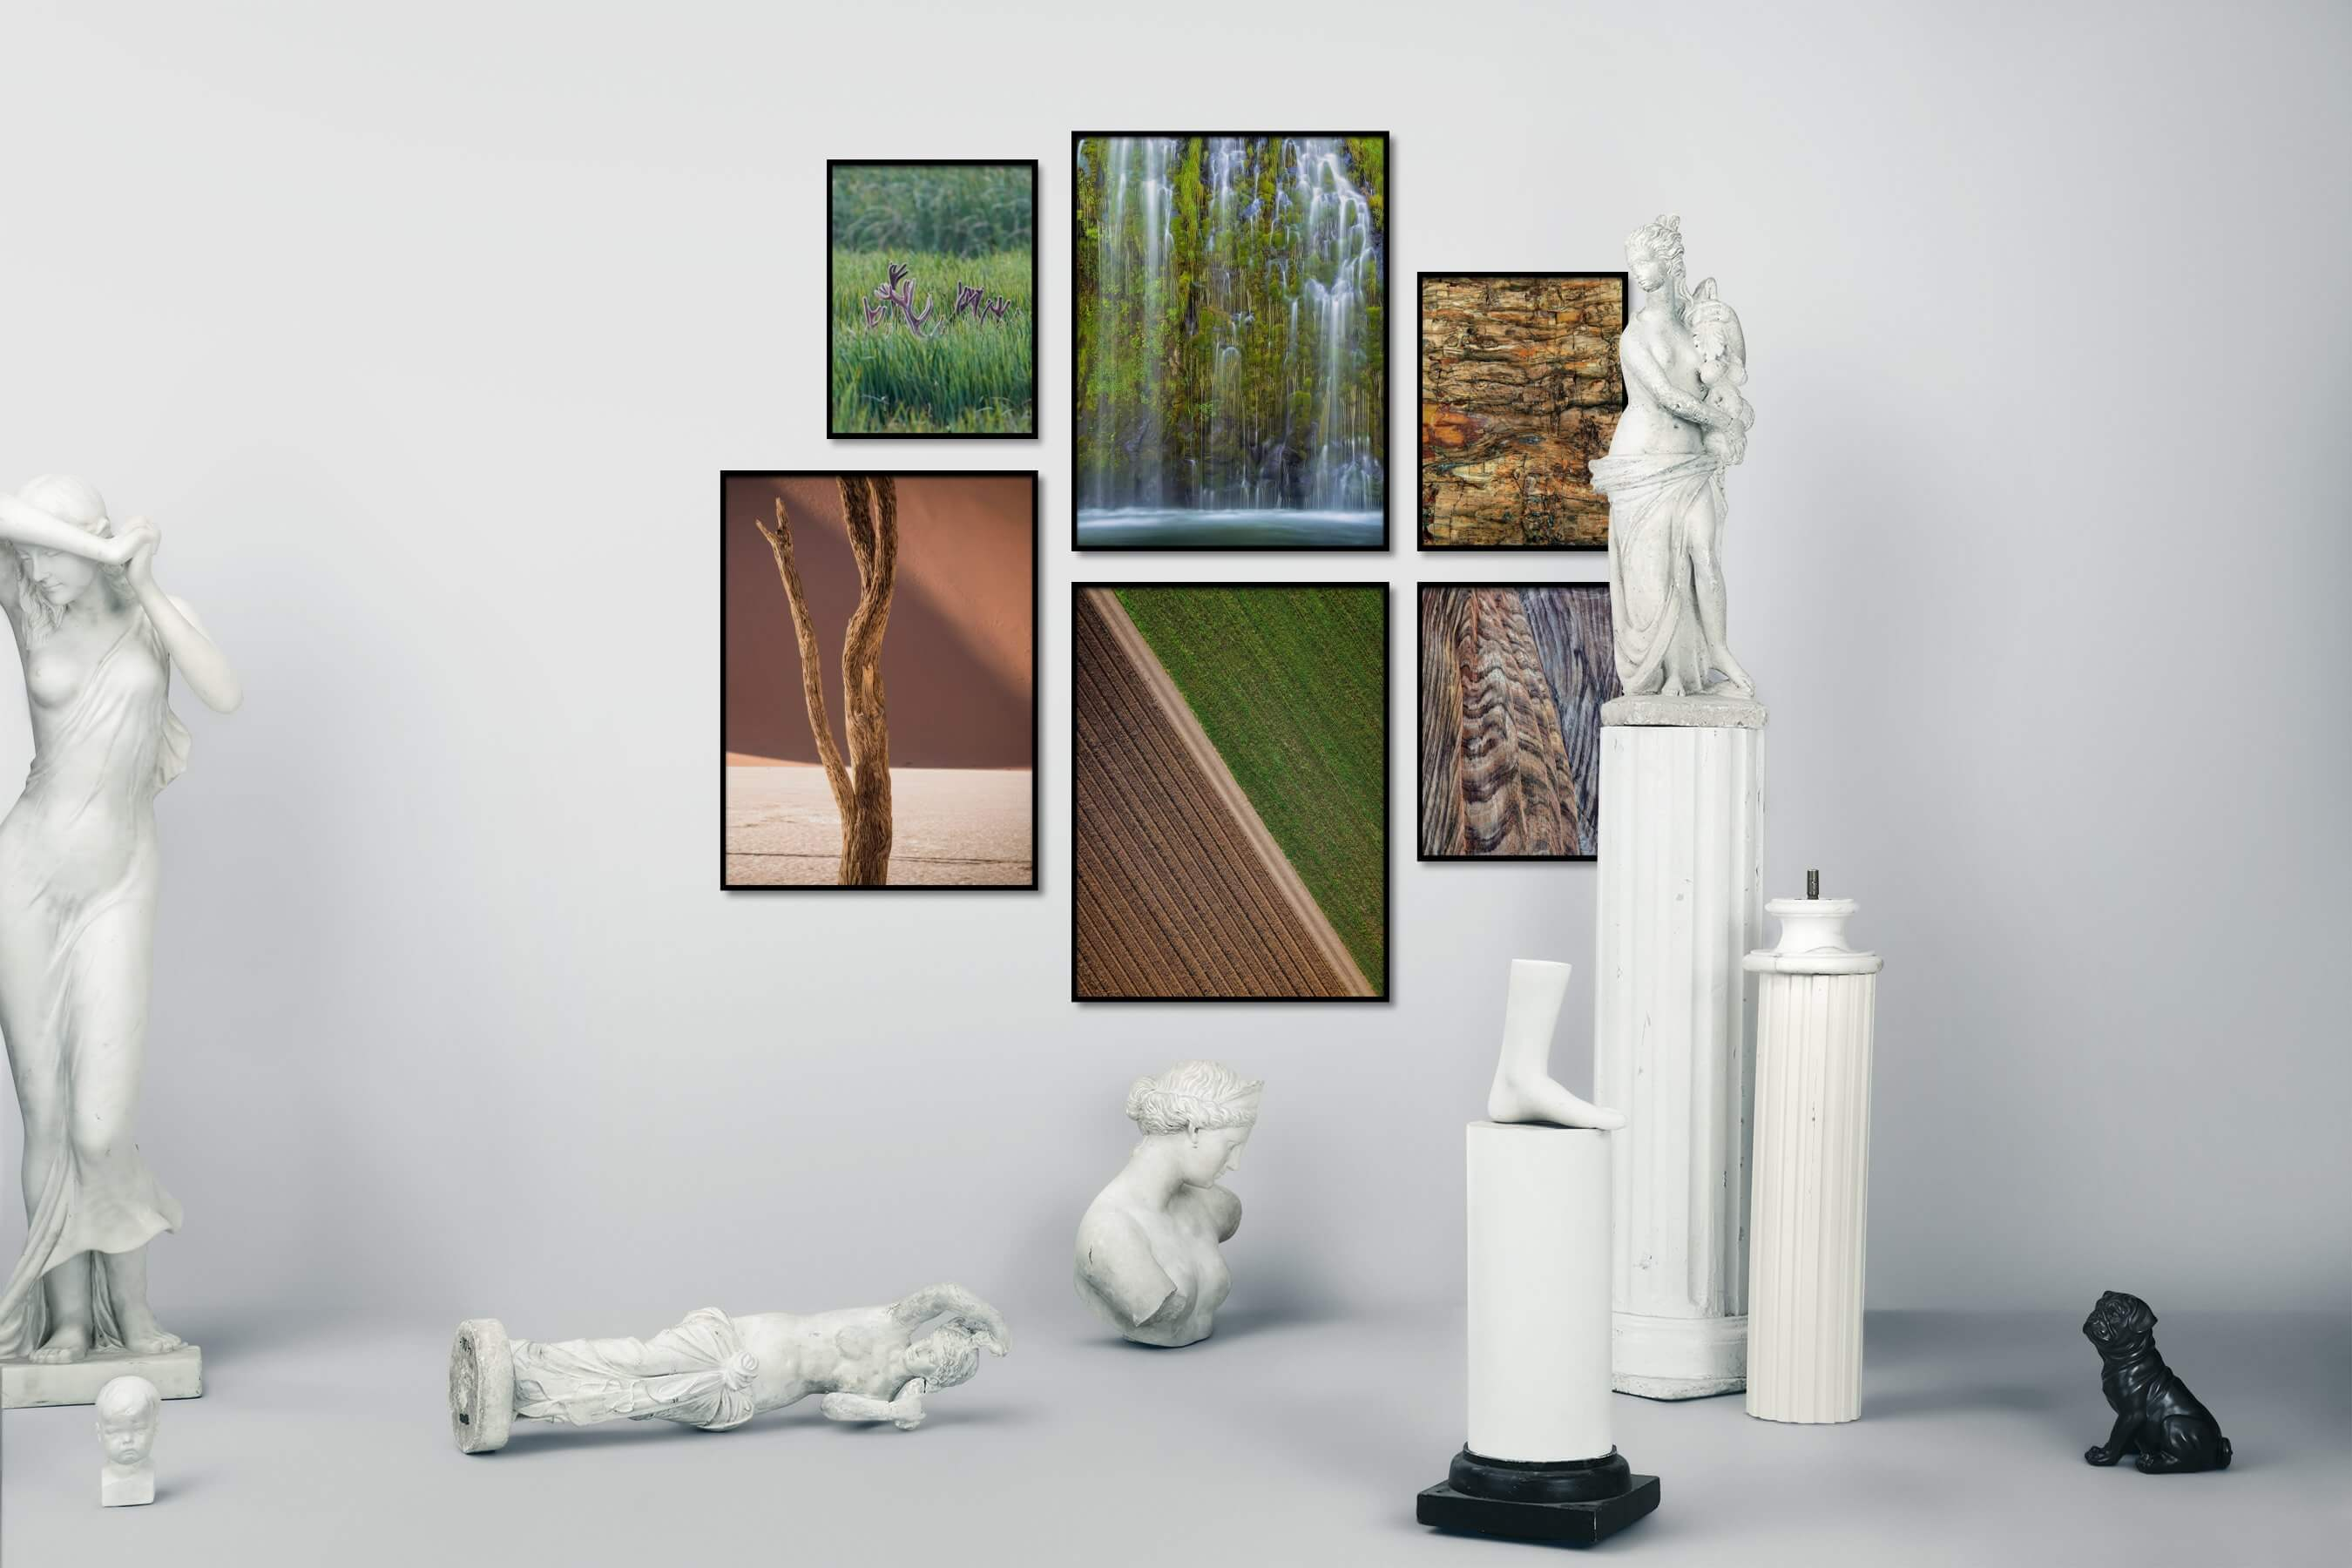 Gallery wall idea with six framed pictures arranged on a wall depicting For the Moderate, Animals, Nature, Mindfulness, Country Life, and For the Maximalist